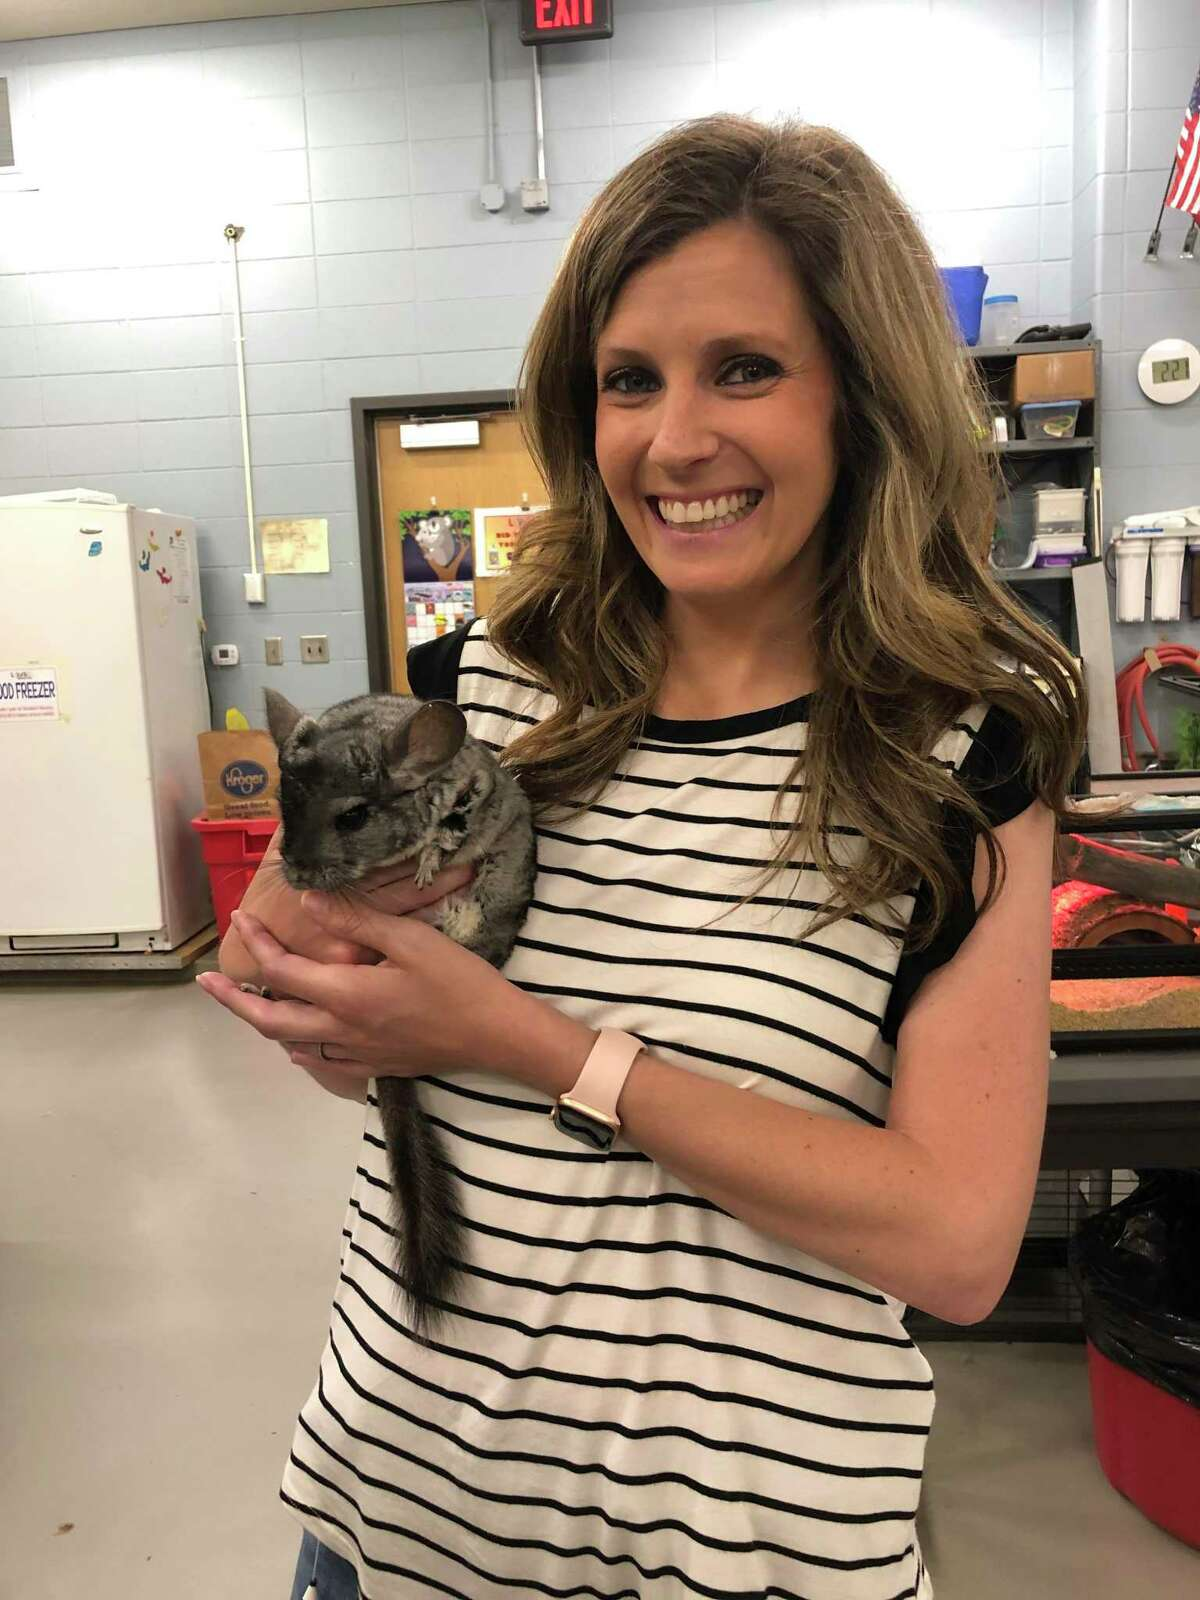 Nicole Hicks is the new principal of Seabrook Intermediate School, which she attended as a student. her friend is a chinchilla that is part of the school's Living Materials Center, which houses animals used in Clear Creek ISD classrooms and curriculum.